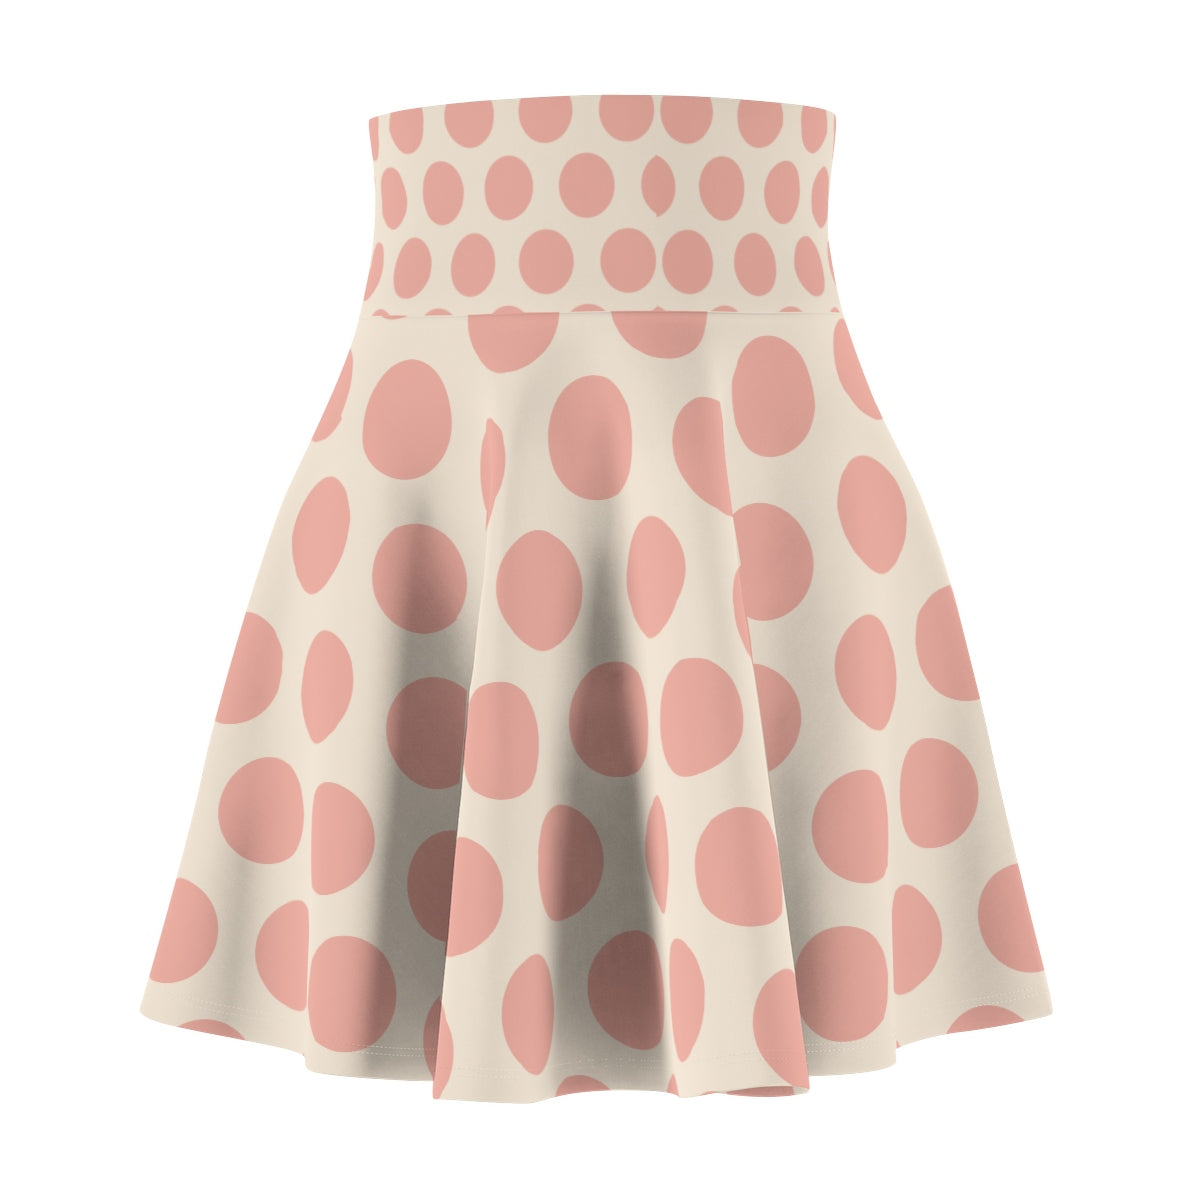 Pink Polka Dot Women's Skater Skirt All Over Prints - Polka Dotted All The Things Boutique